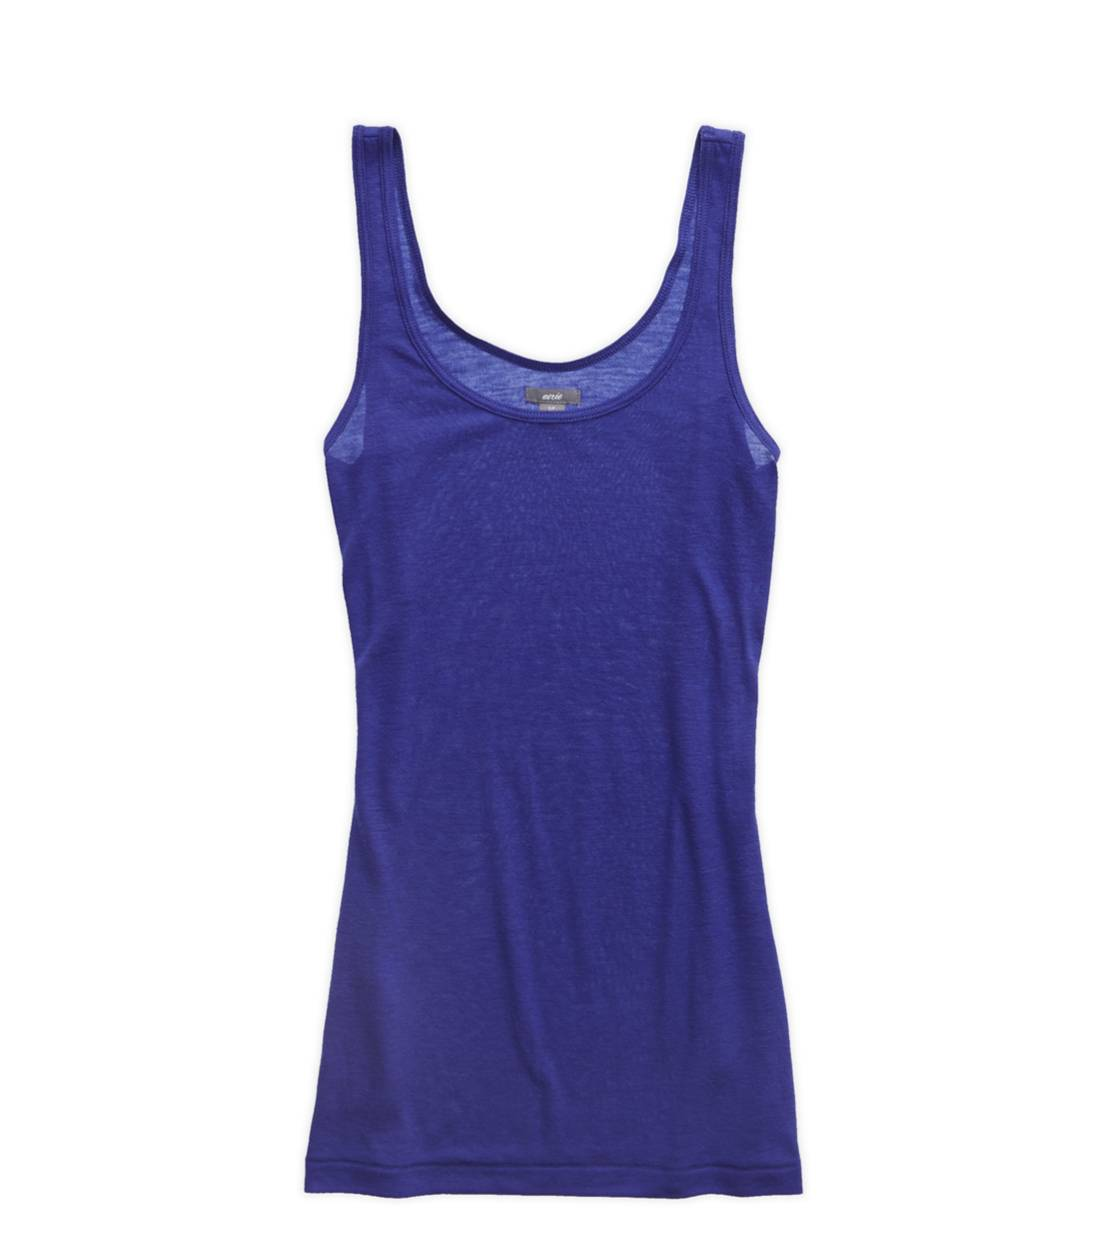 Poet Blue Aerie Basic Scoop Neck Tank